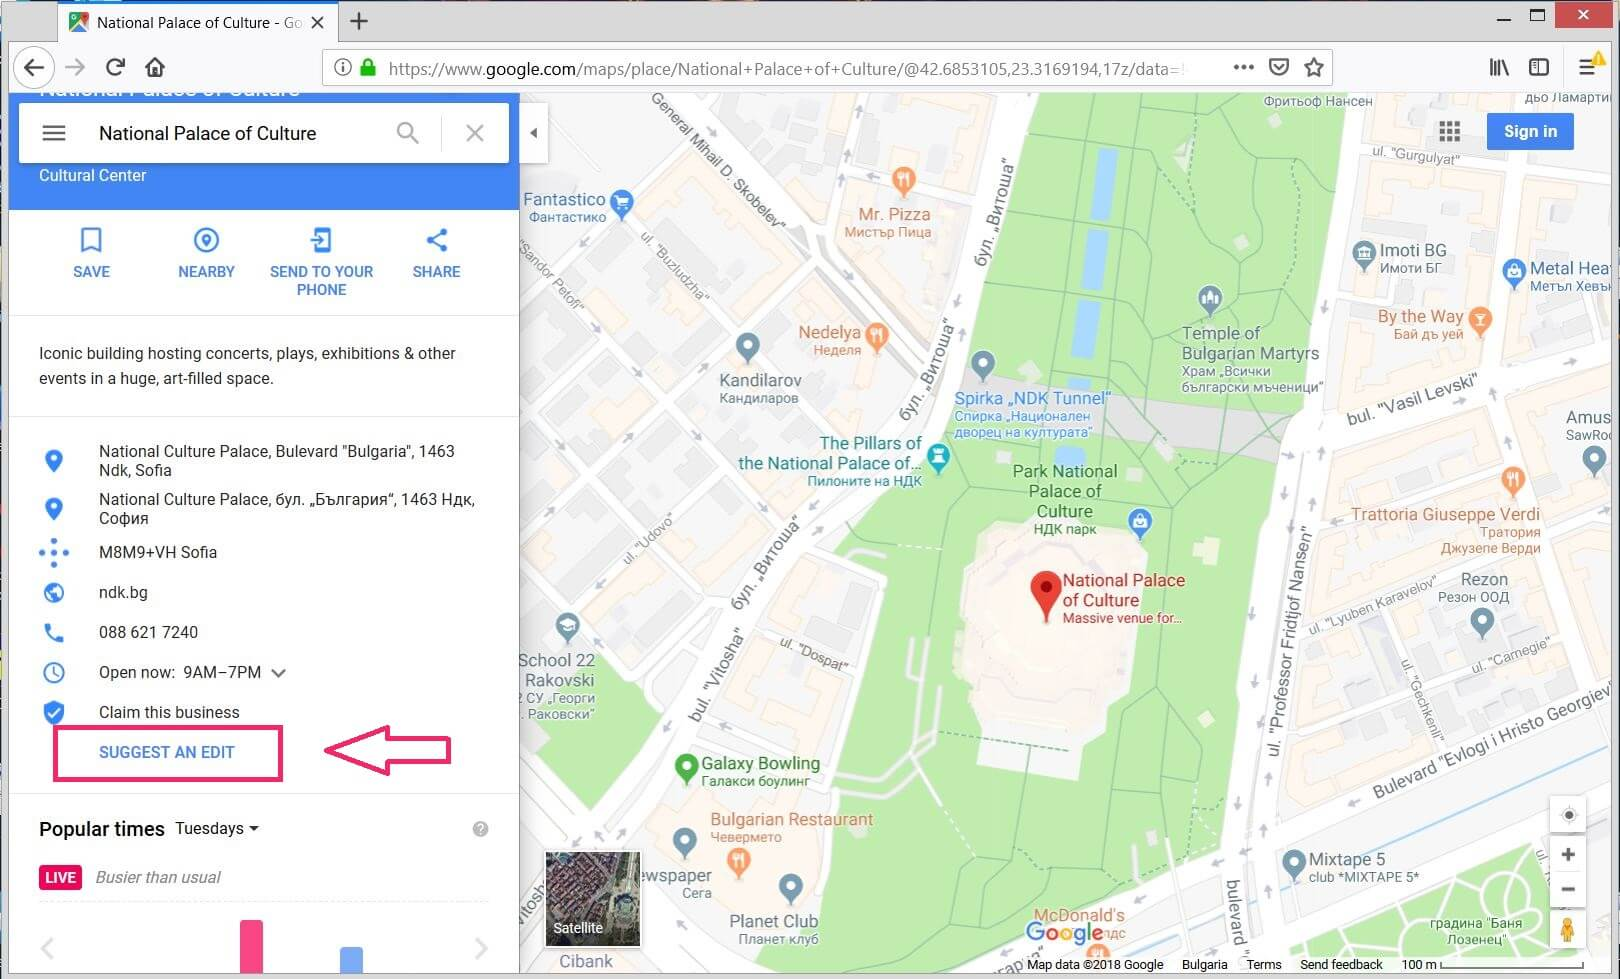 google maps provides an info edit option for each place sensorstechforum